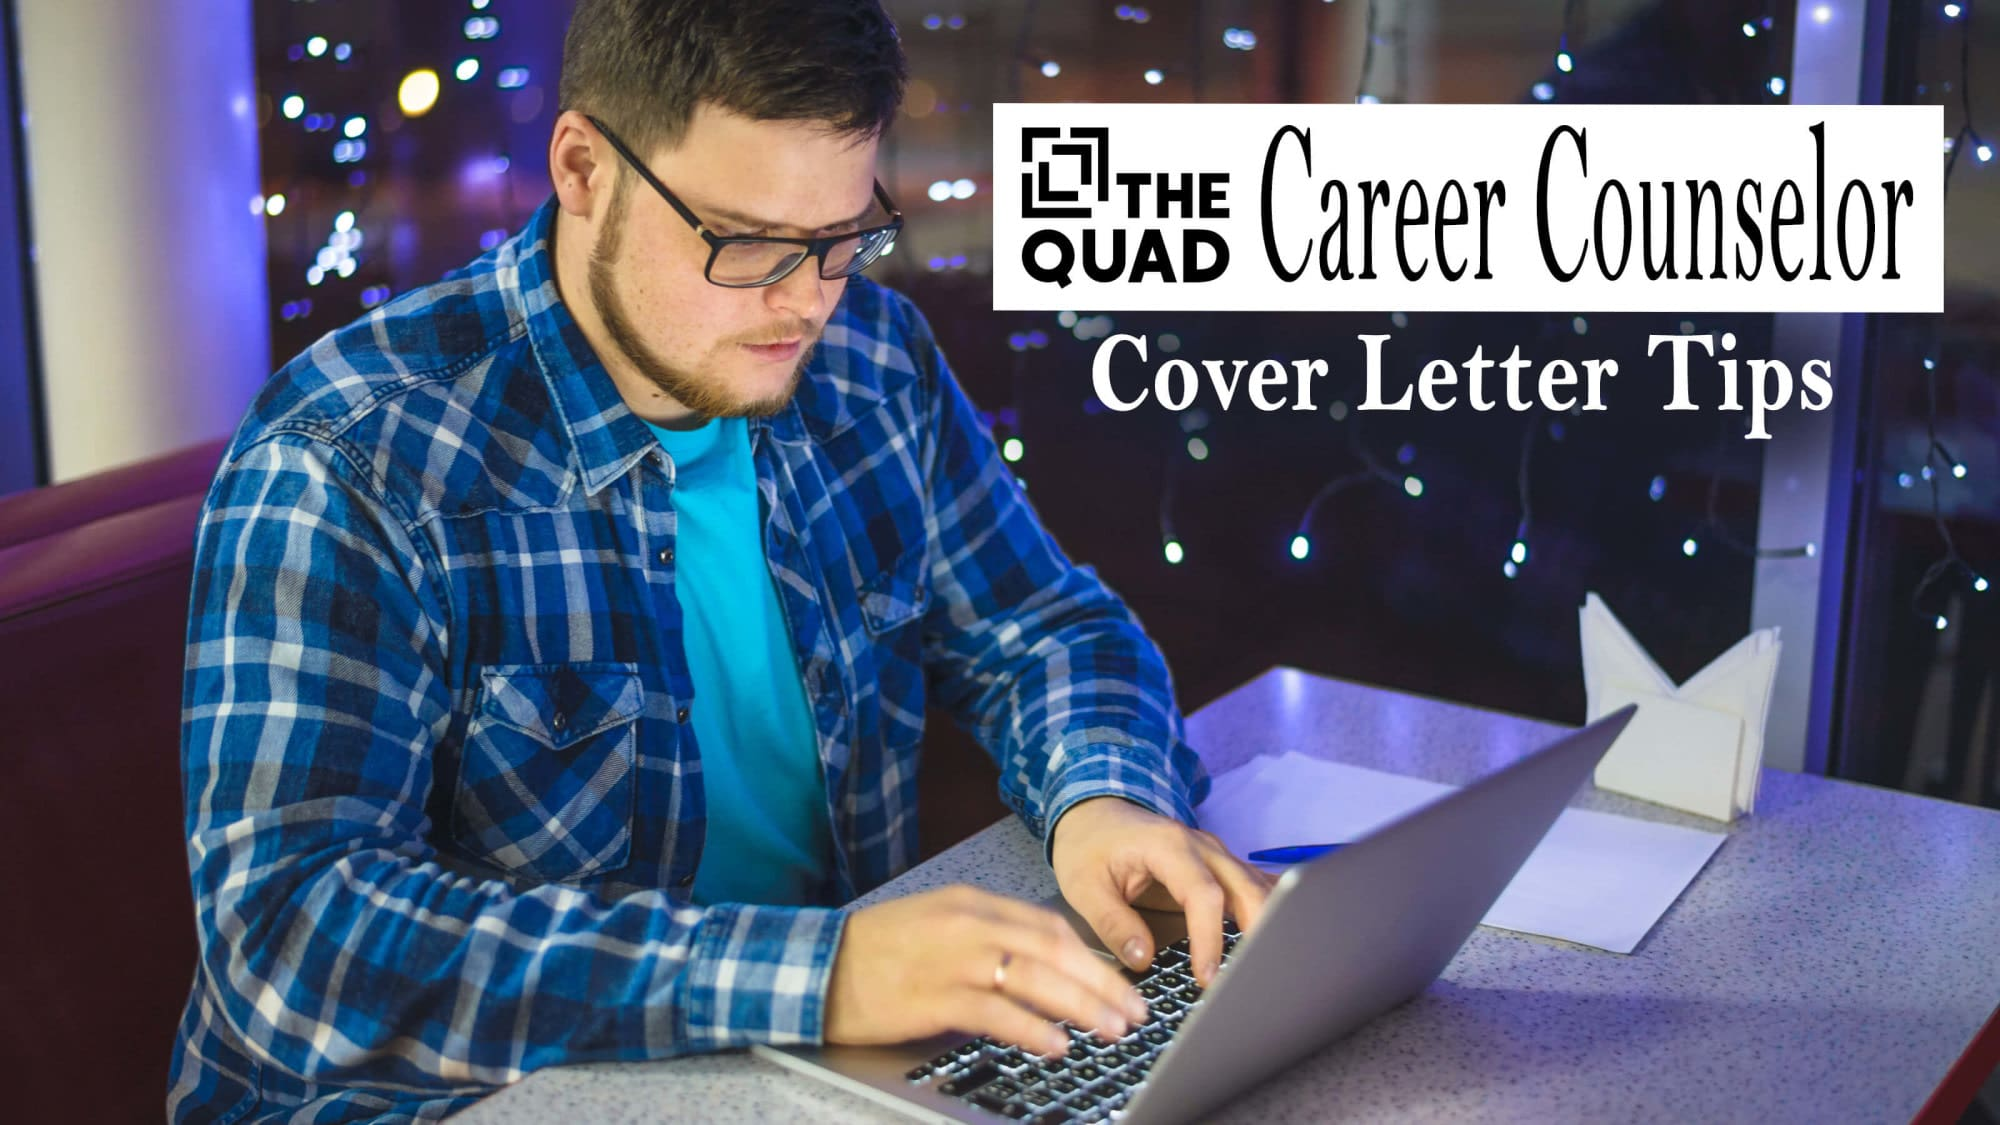 Cover Letter Tips — The Quad Career Counselor